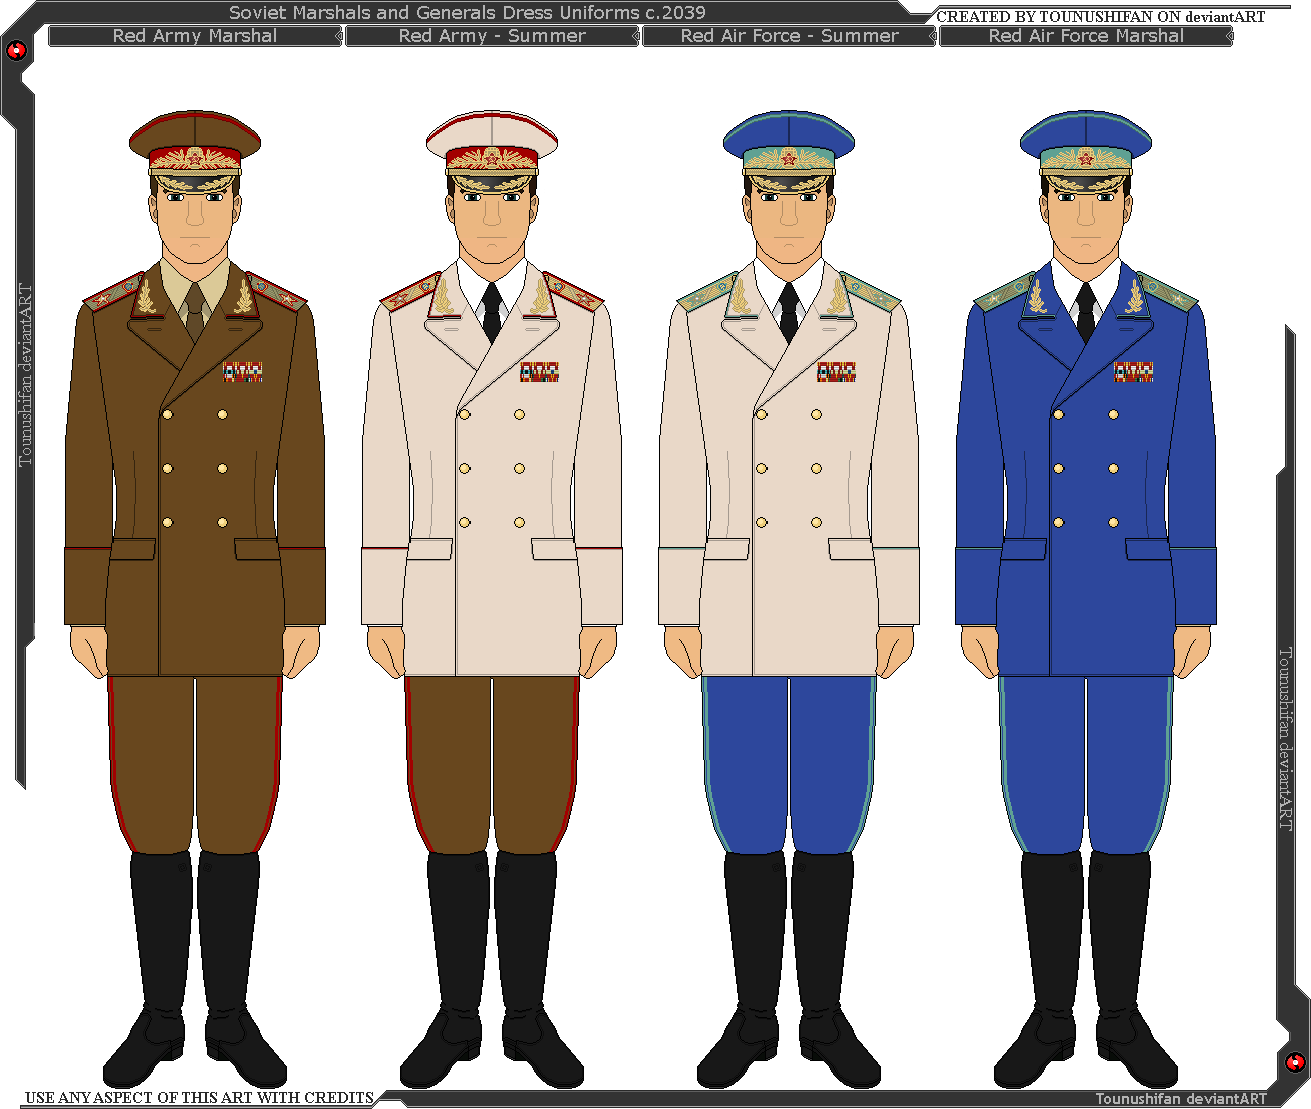 Japanese Generals Panterria Soviet General And Marshal Uniforms By Grand